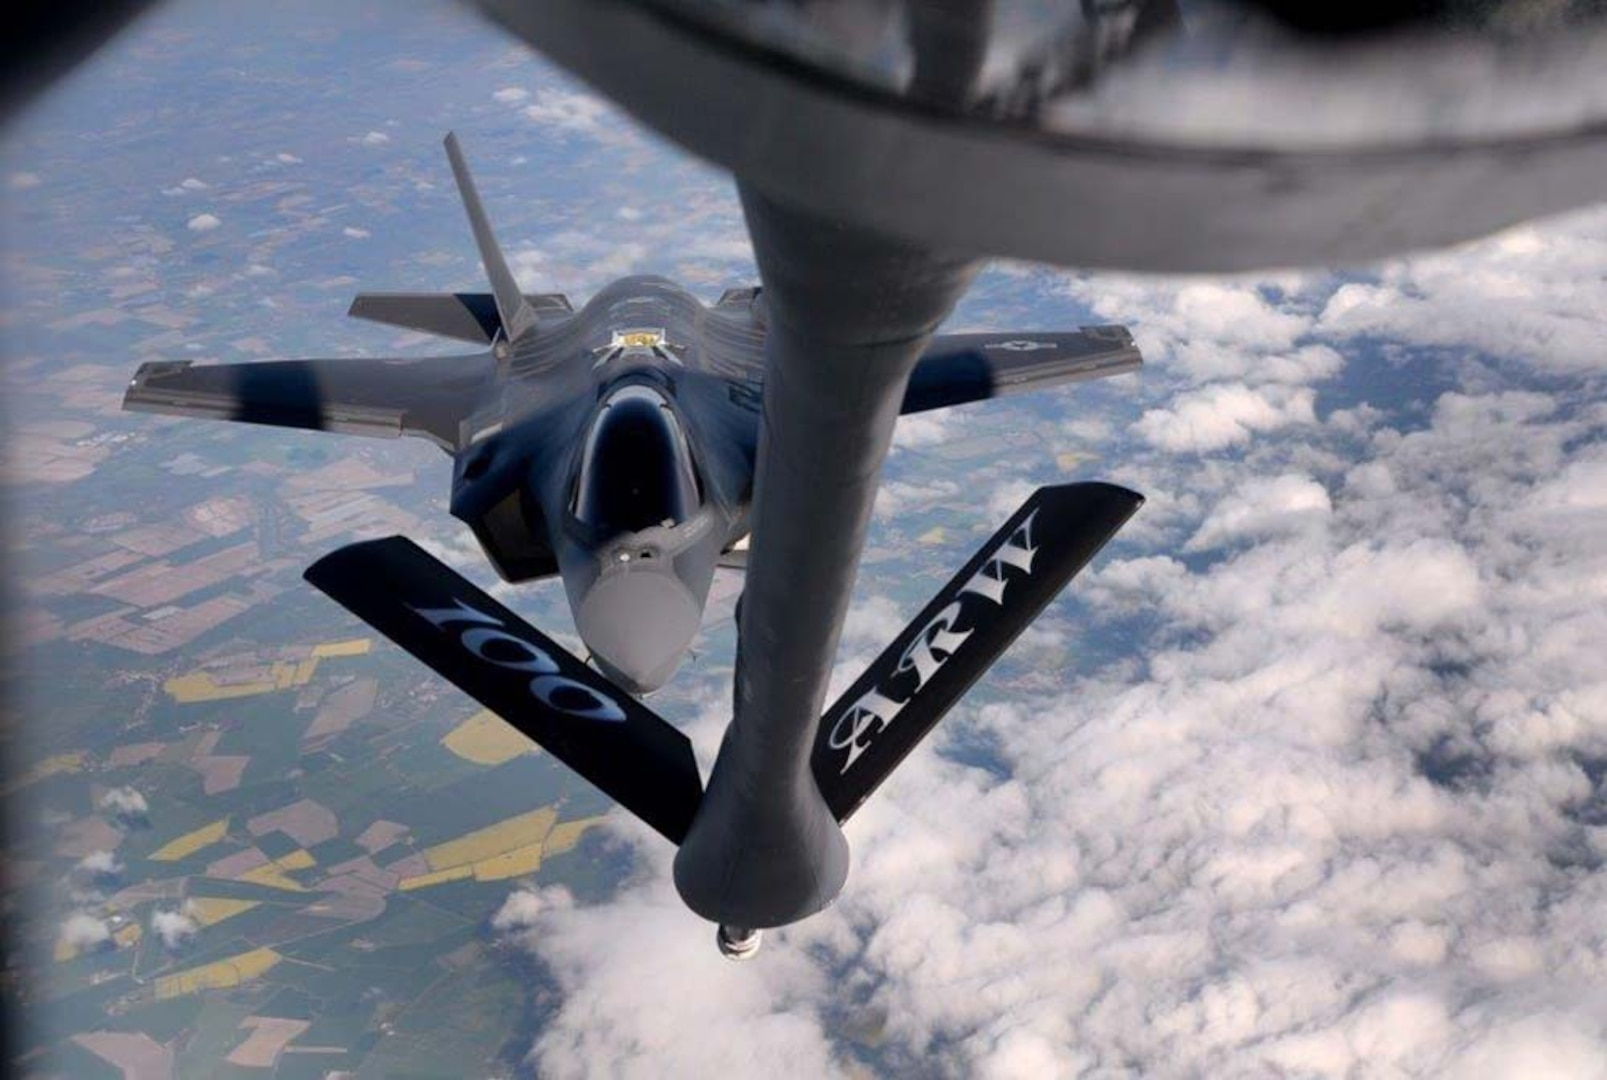 An inflight refueling is depicted.